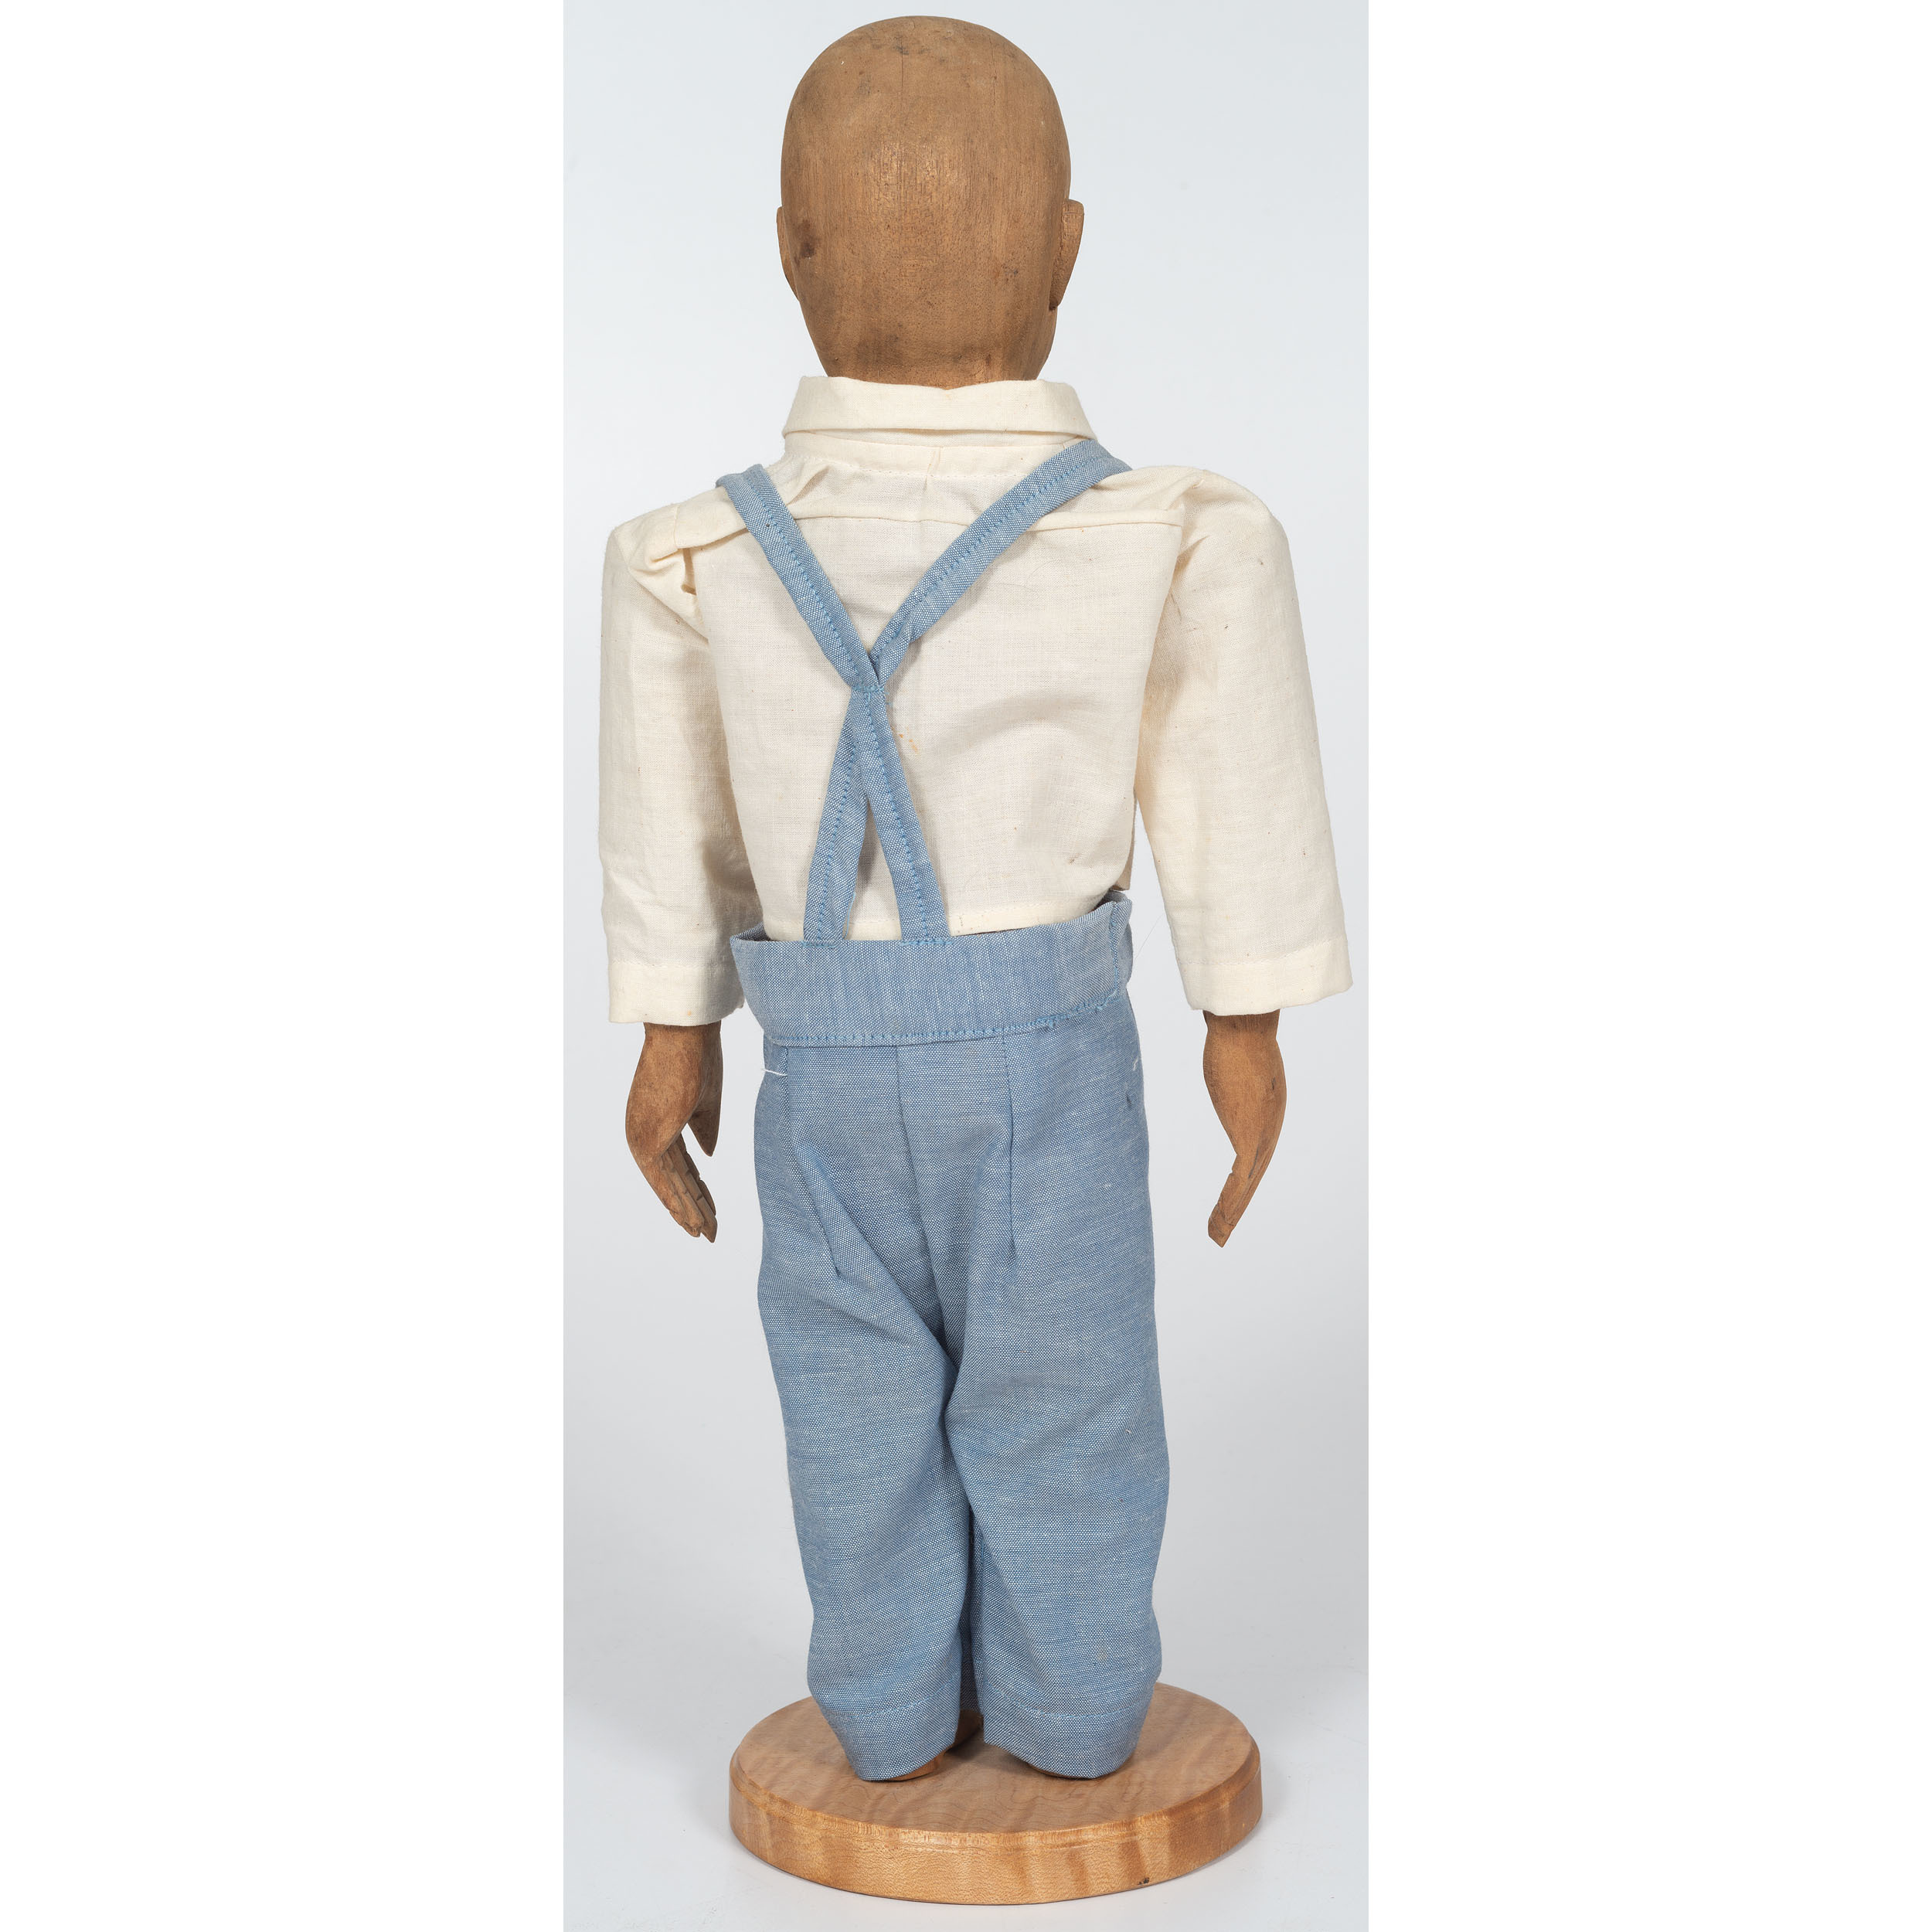 Amish Articulated Boy Doll | Cowan's Auction House: The